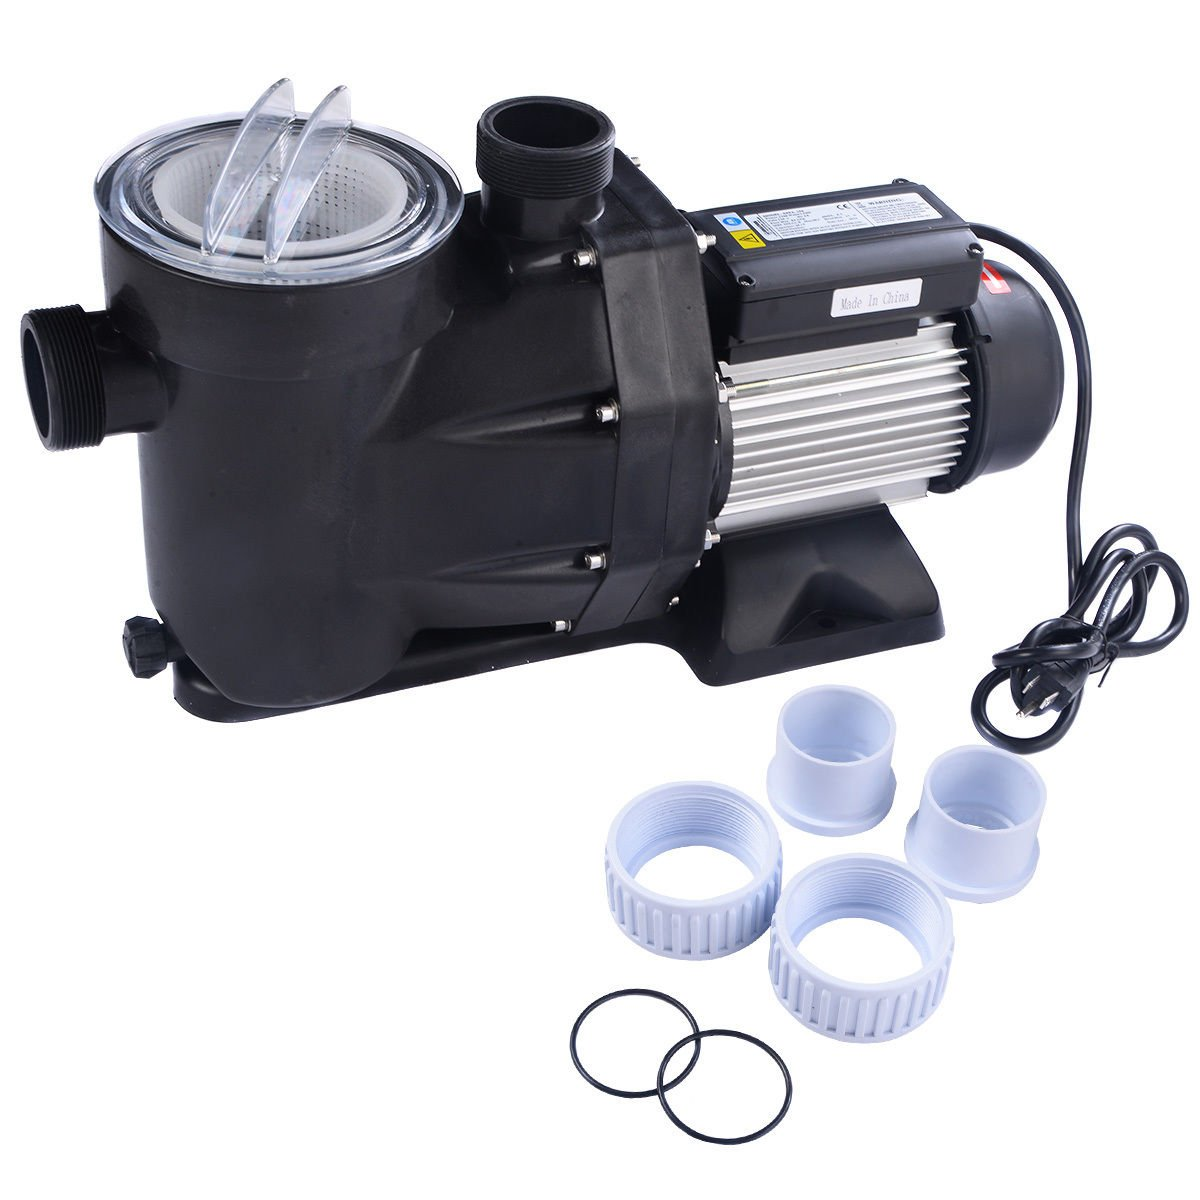 Fashion 1.5HP Swimming Pool Electric Pump Water Above Ground SPA DC 5040 GPH 1-1/2'' NPT